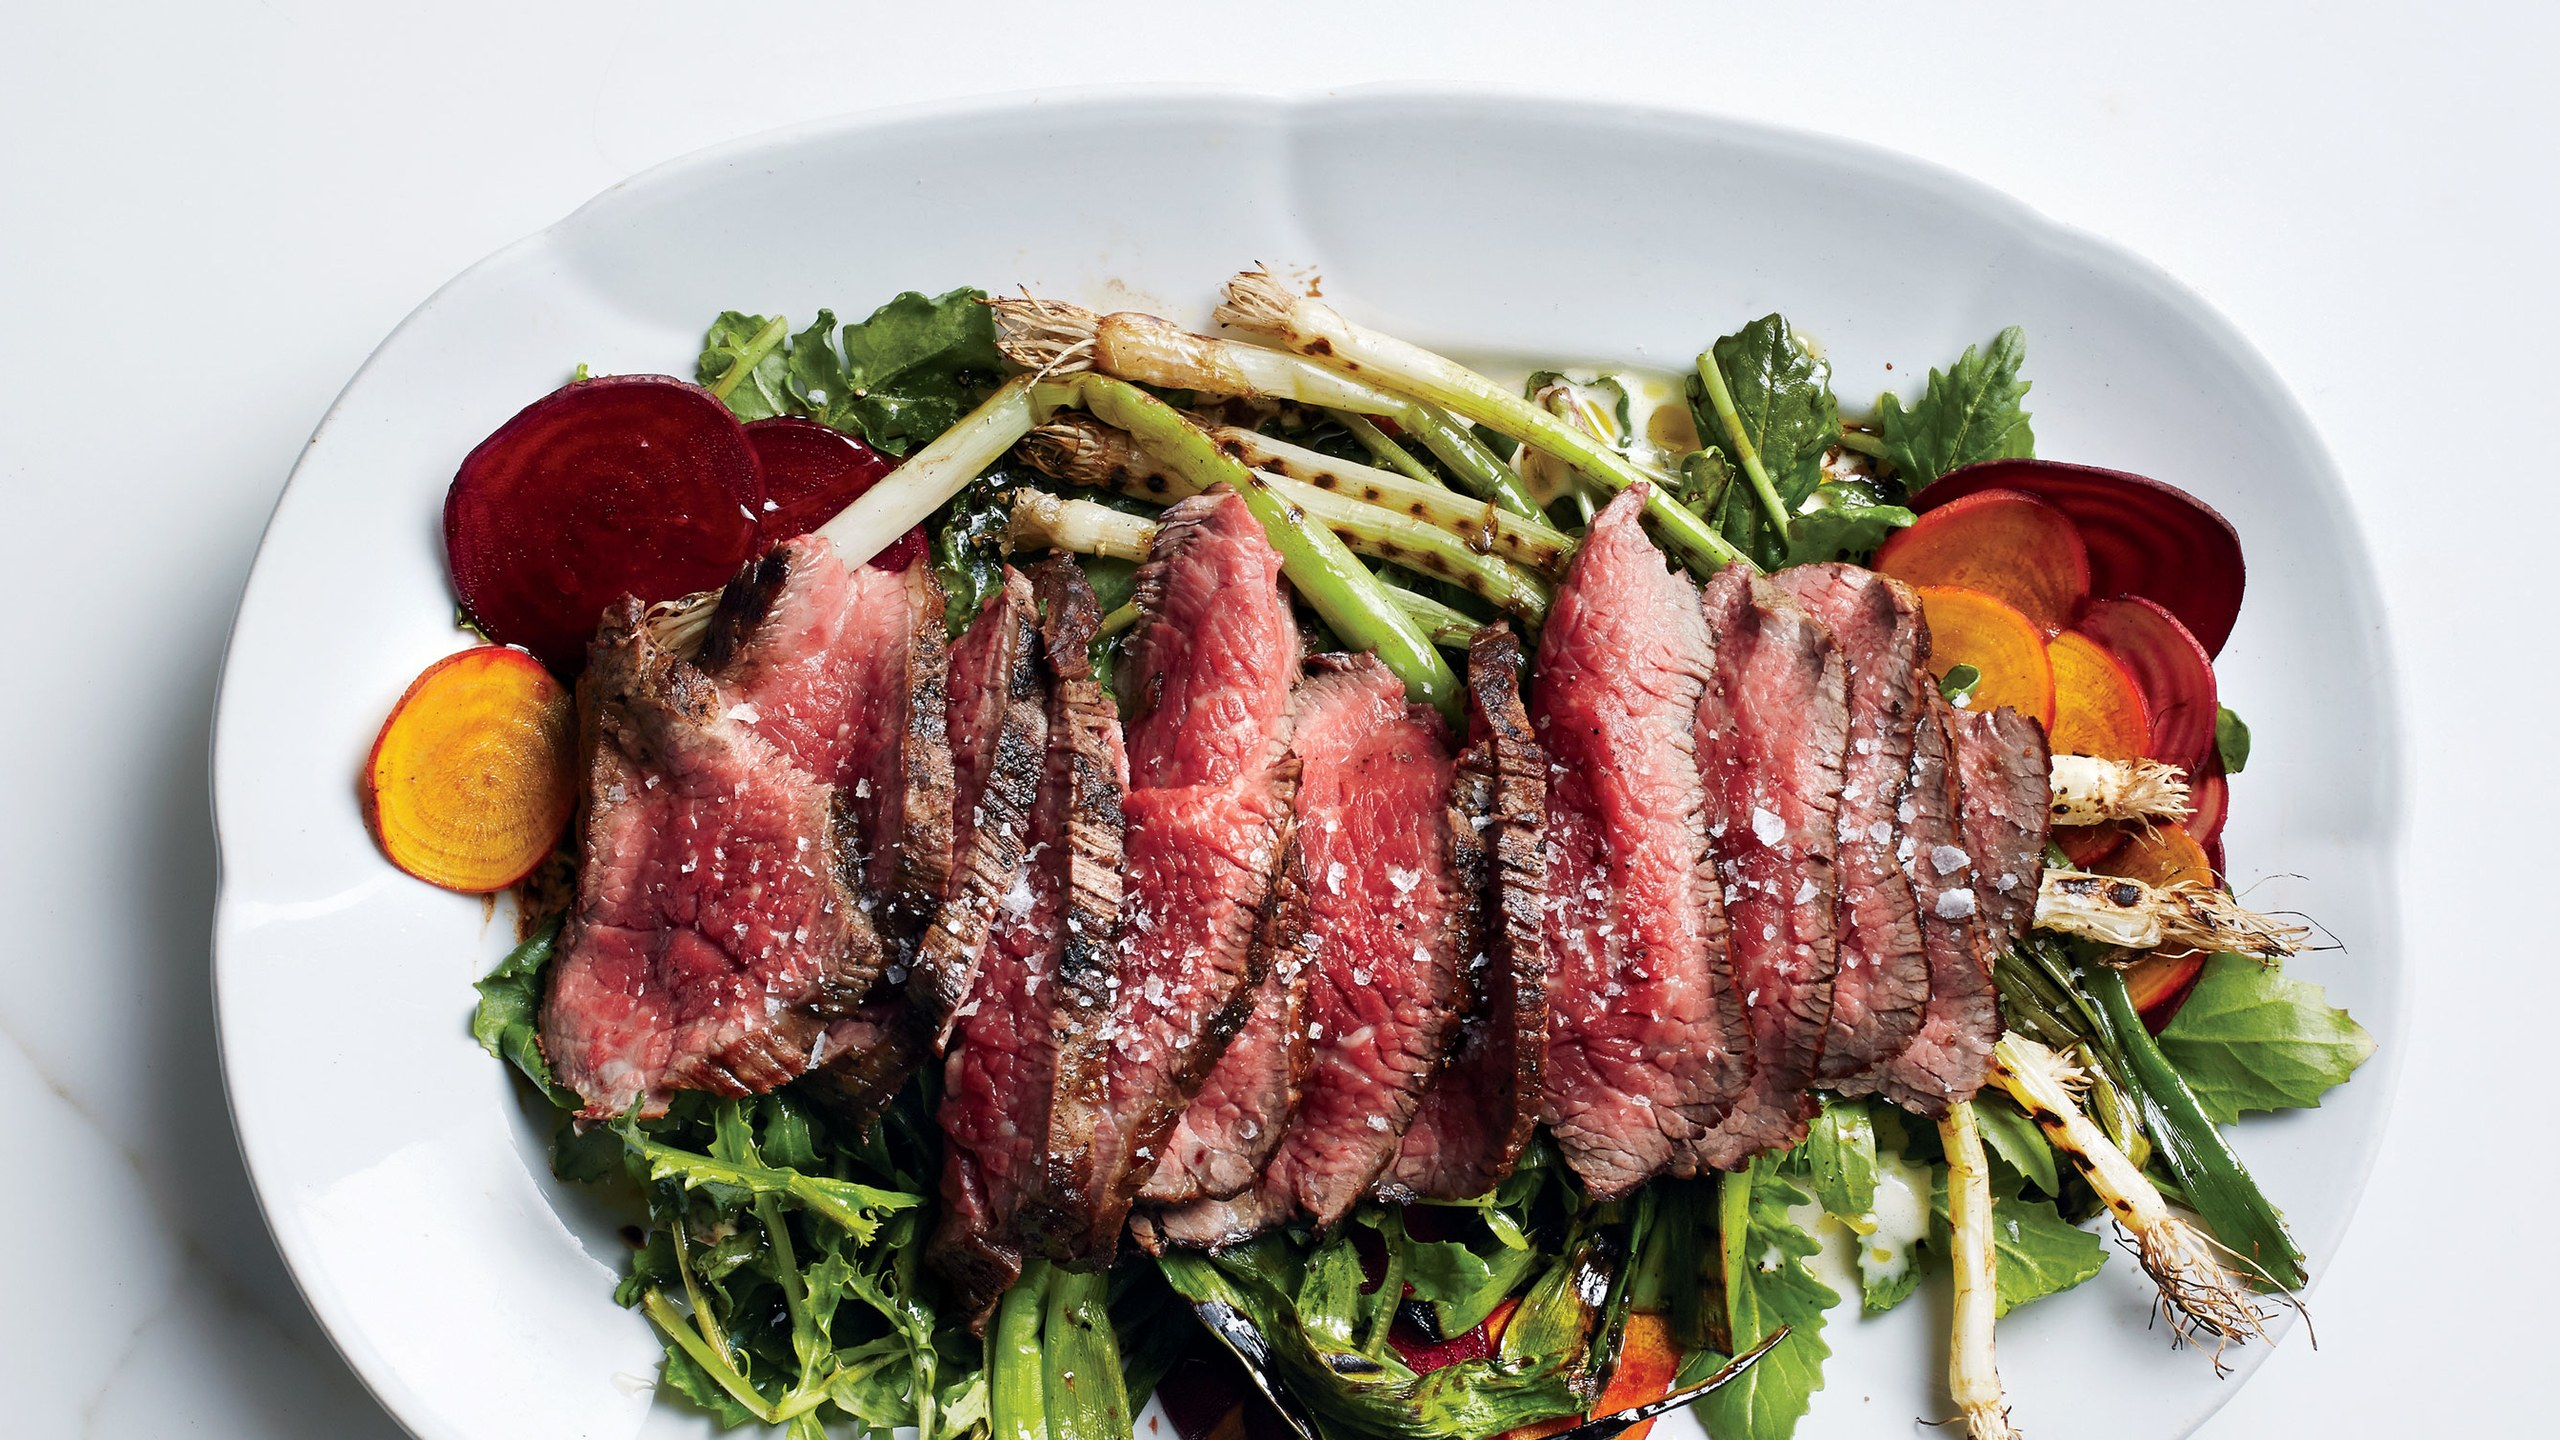 grilled-steak-salad-with-beets-and-scallions1